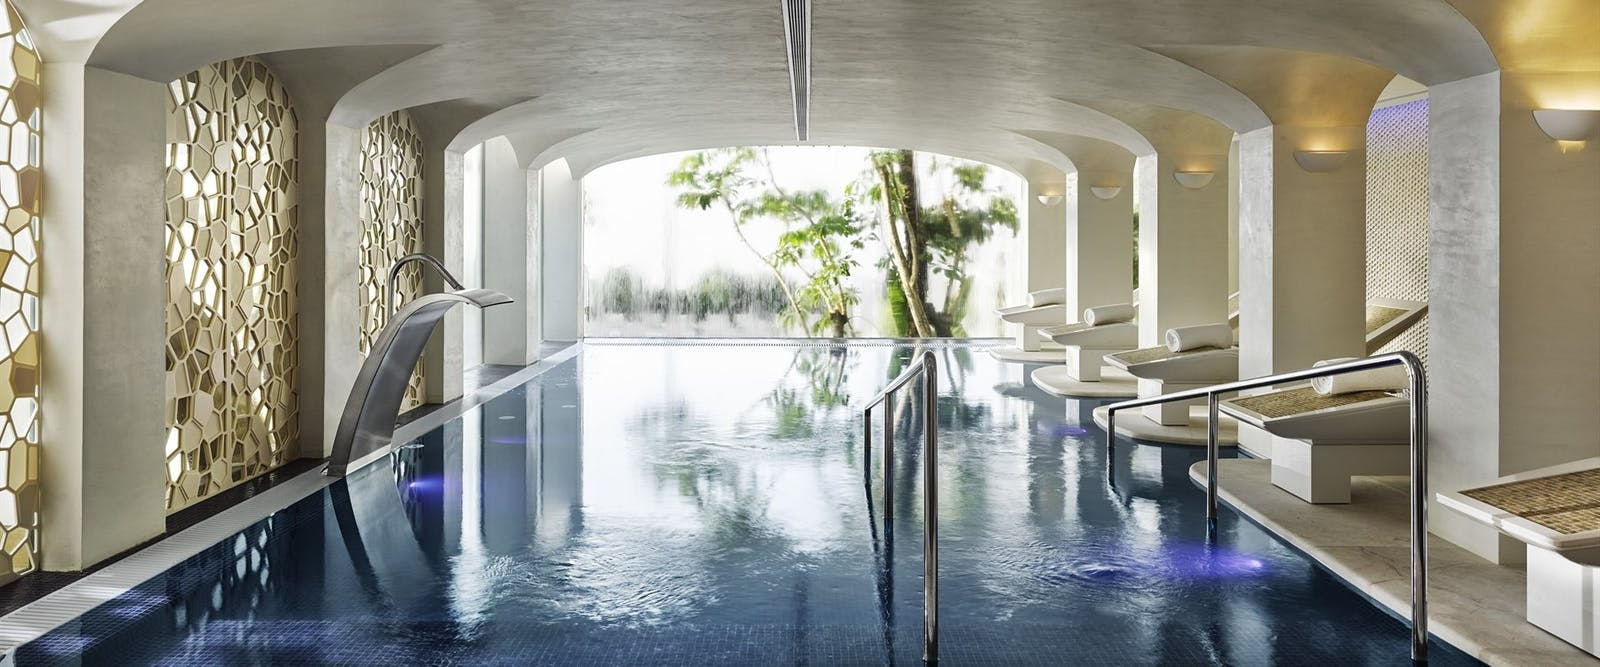 Six Senses Spa Swimming Pool at Nobu Marbella, Costa Del Sol, Spain